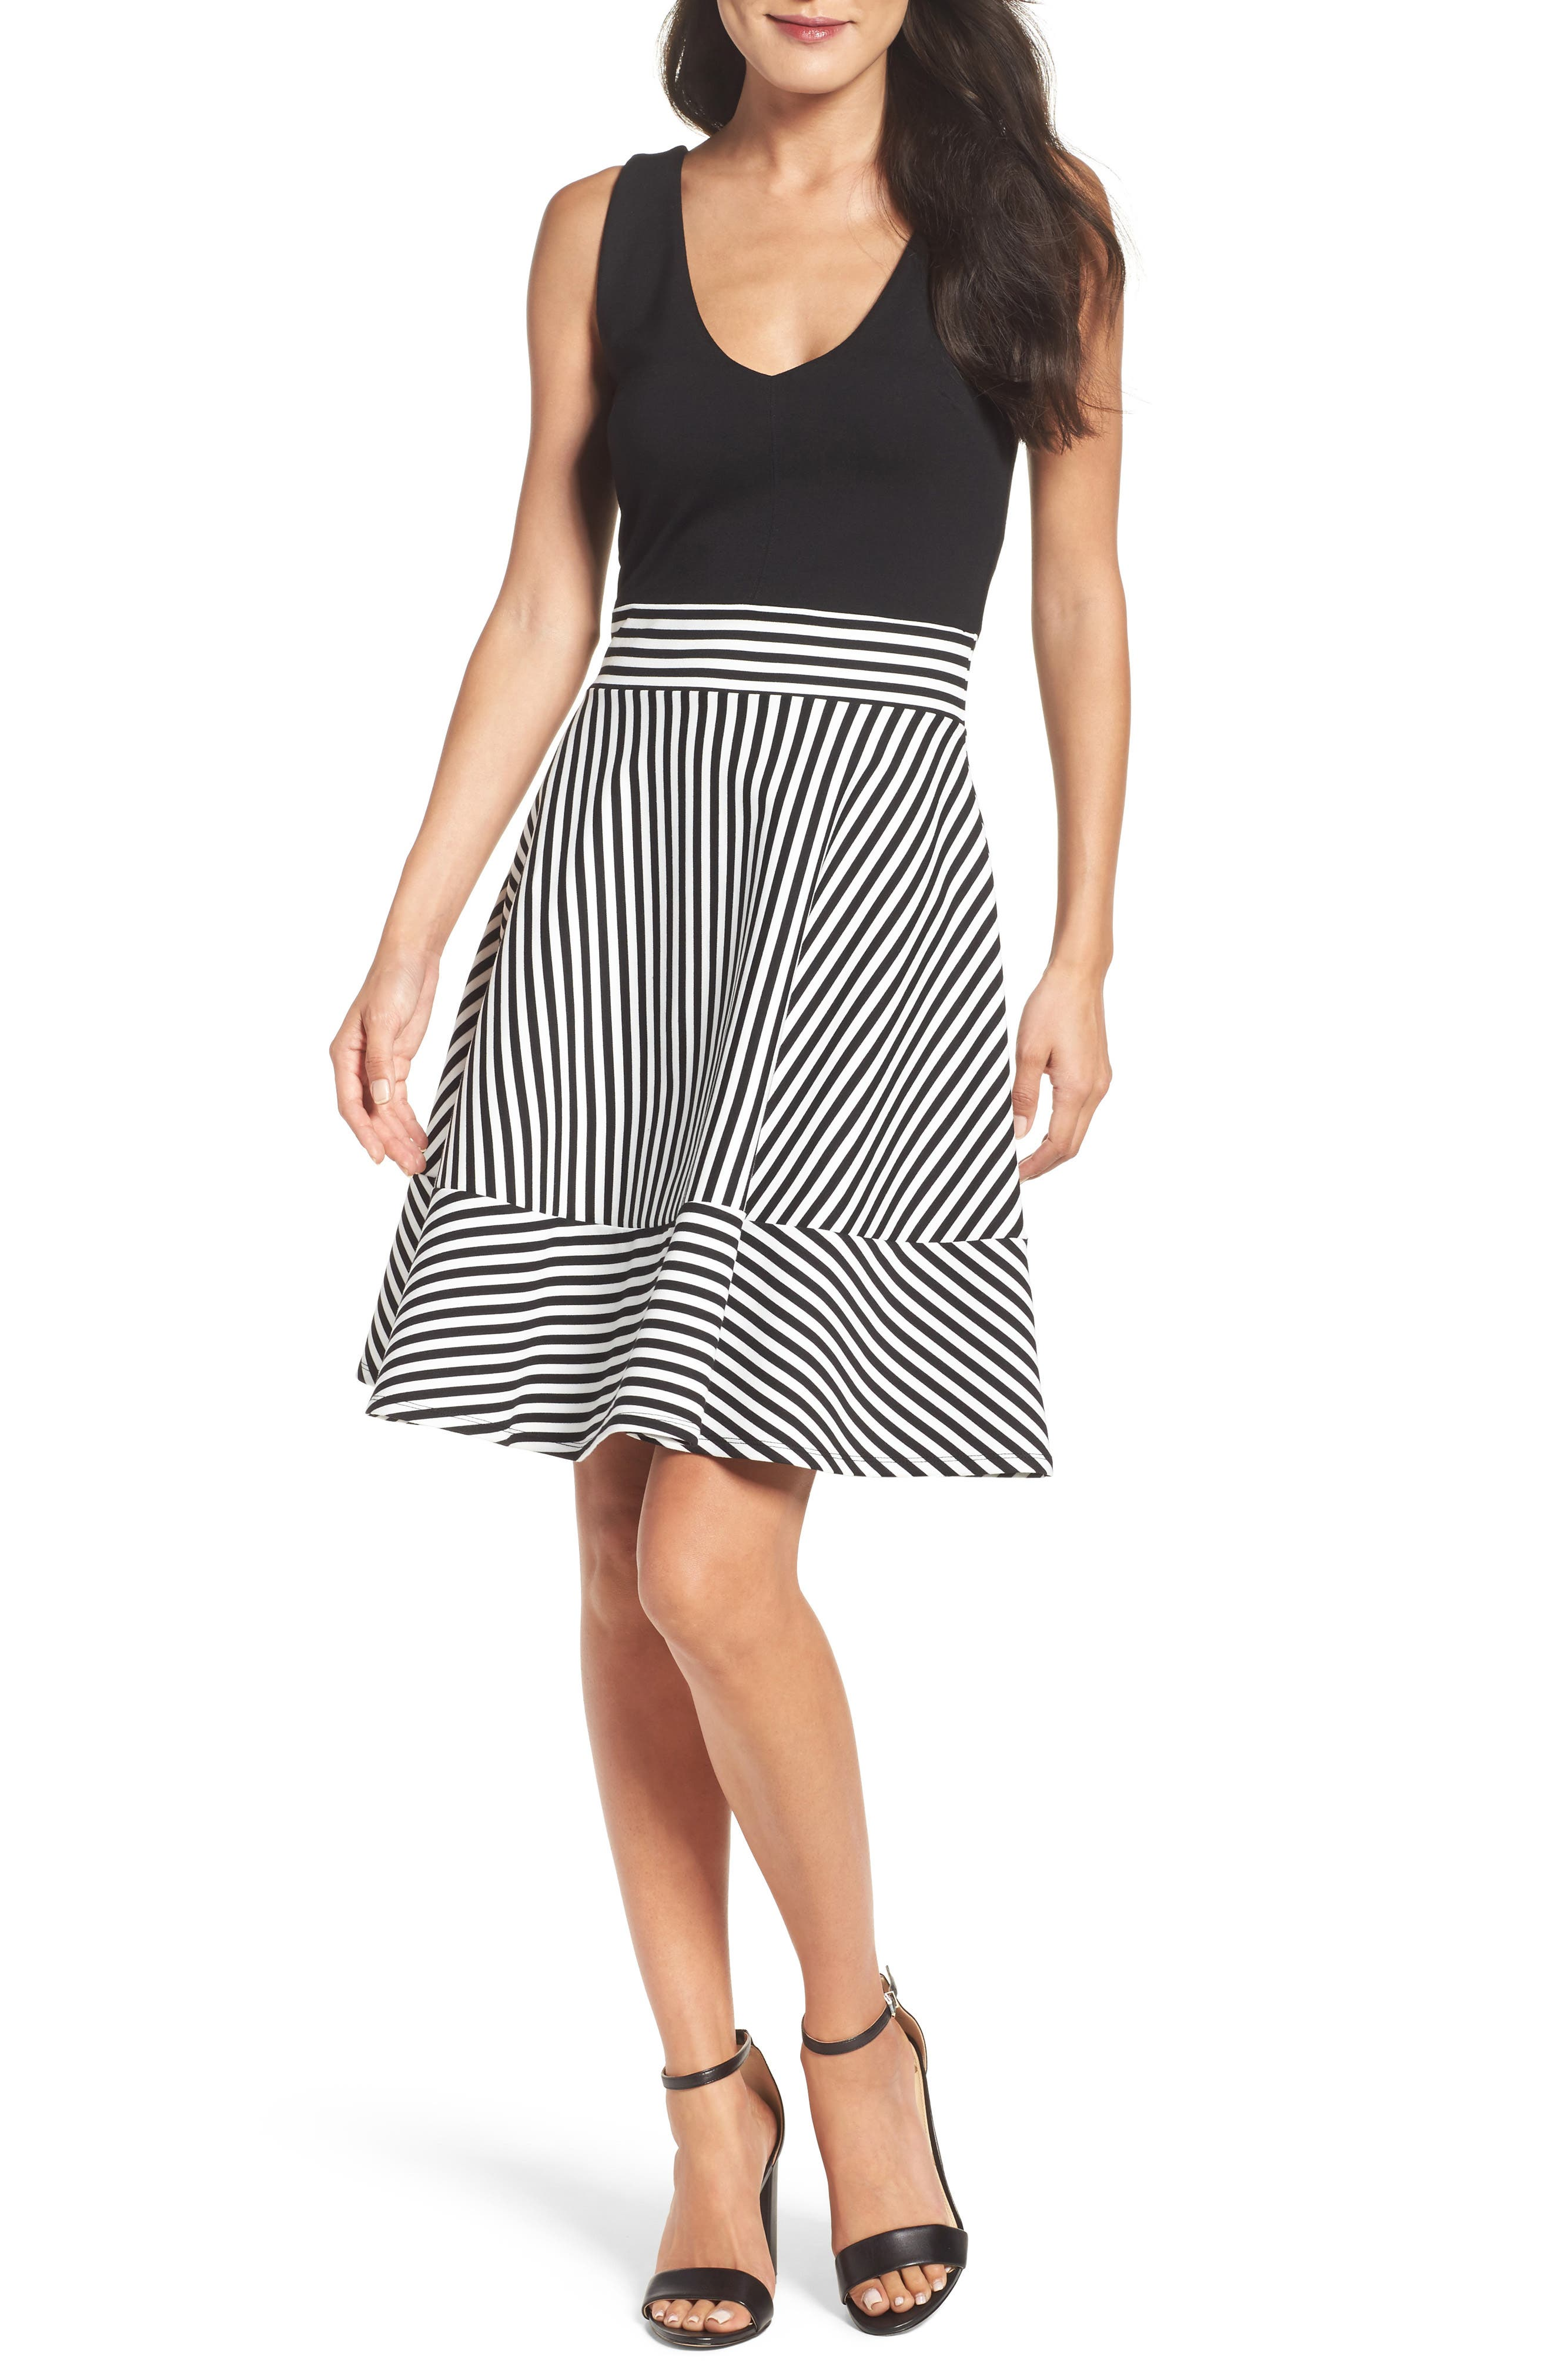 Alternate Image 1 Selected - Felicity & Coco Lala Stripe Fit & Flare Dress (Nordstrom Exclusive)